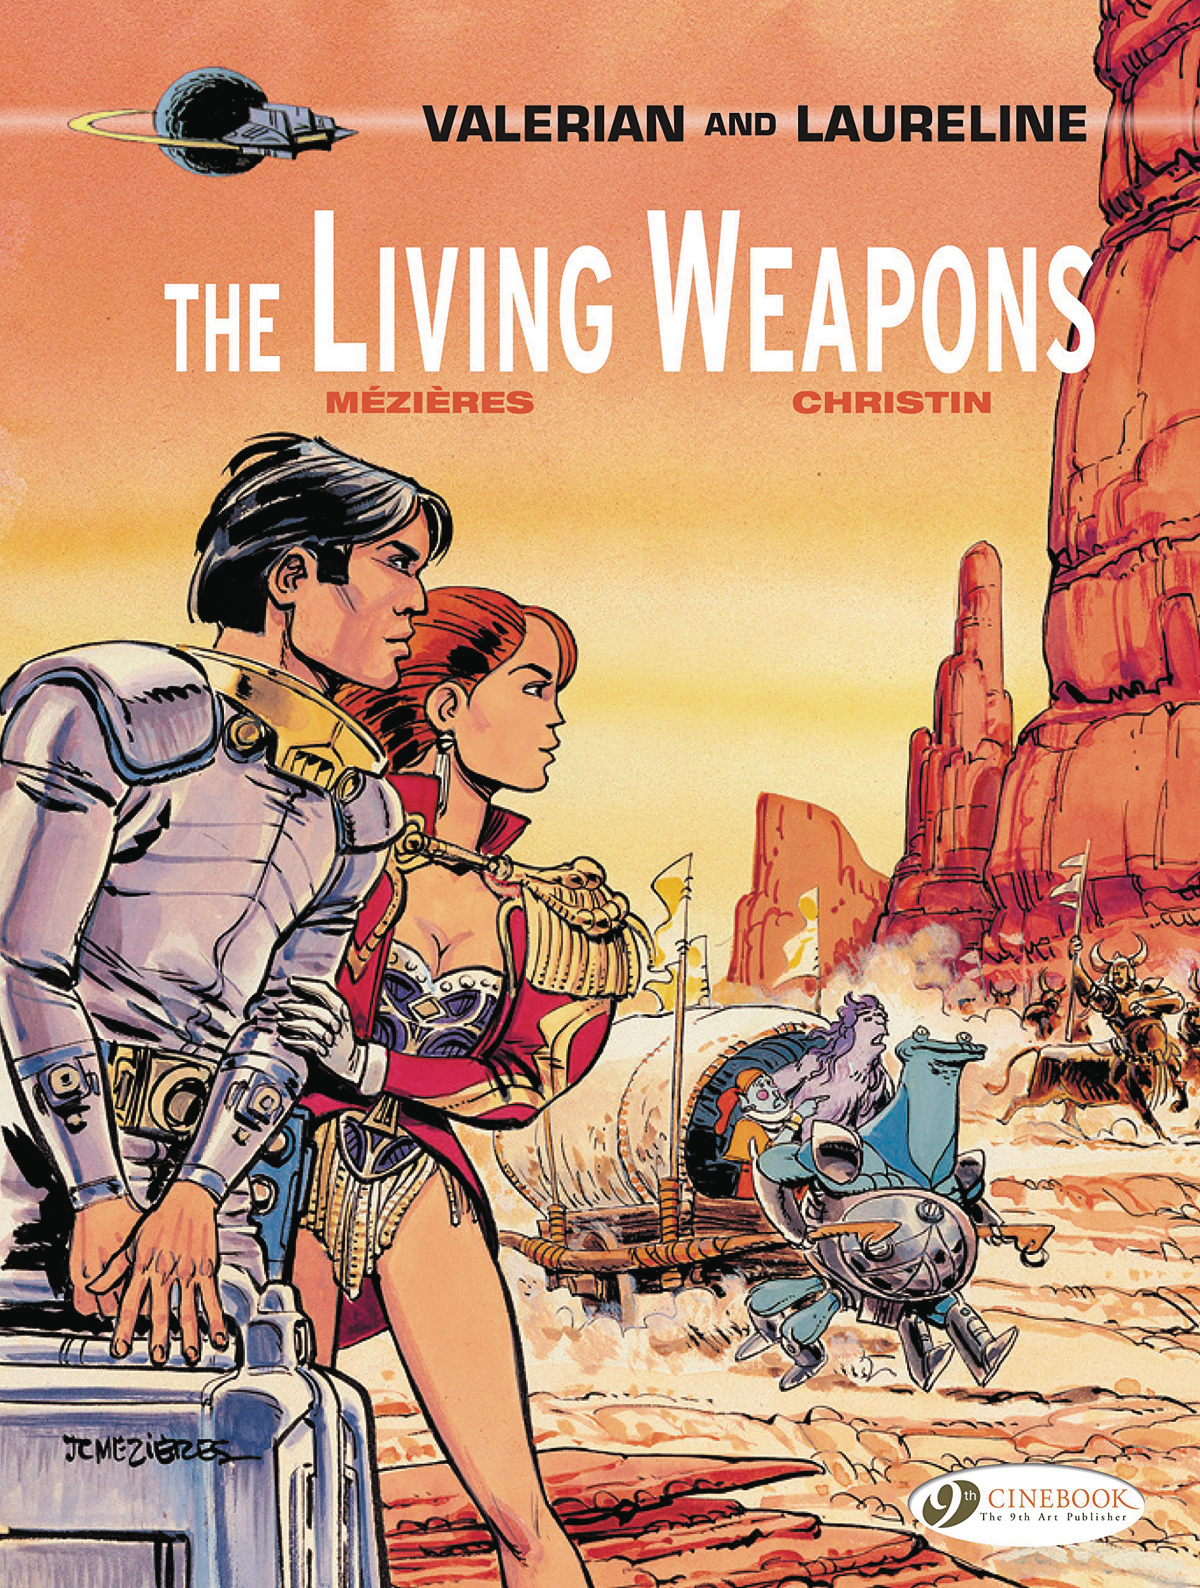 VALERIAN GN VOL 14 LIVING WEAPONS